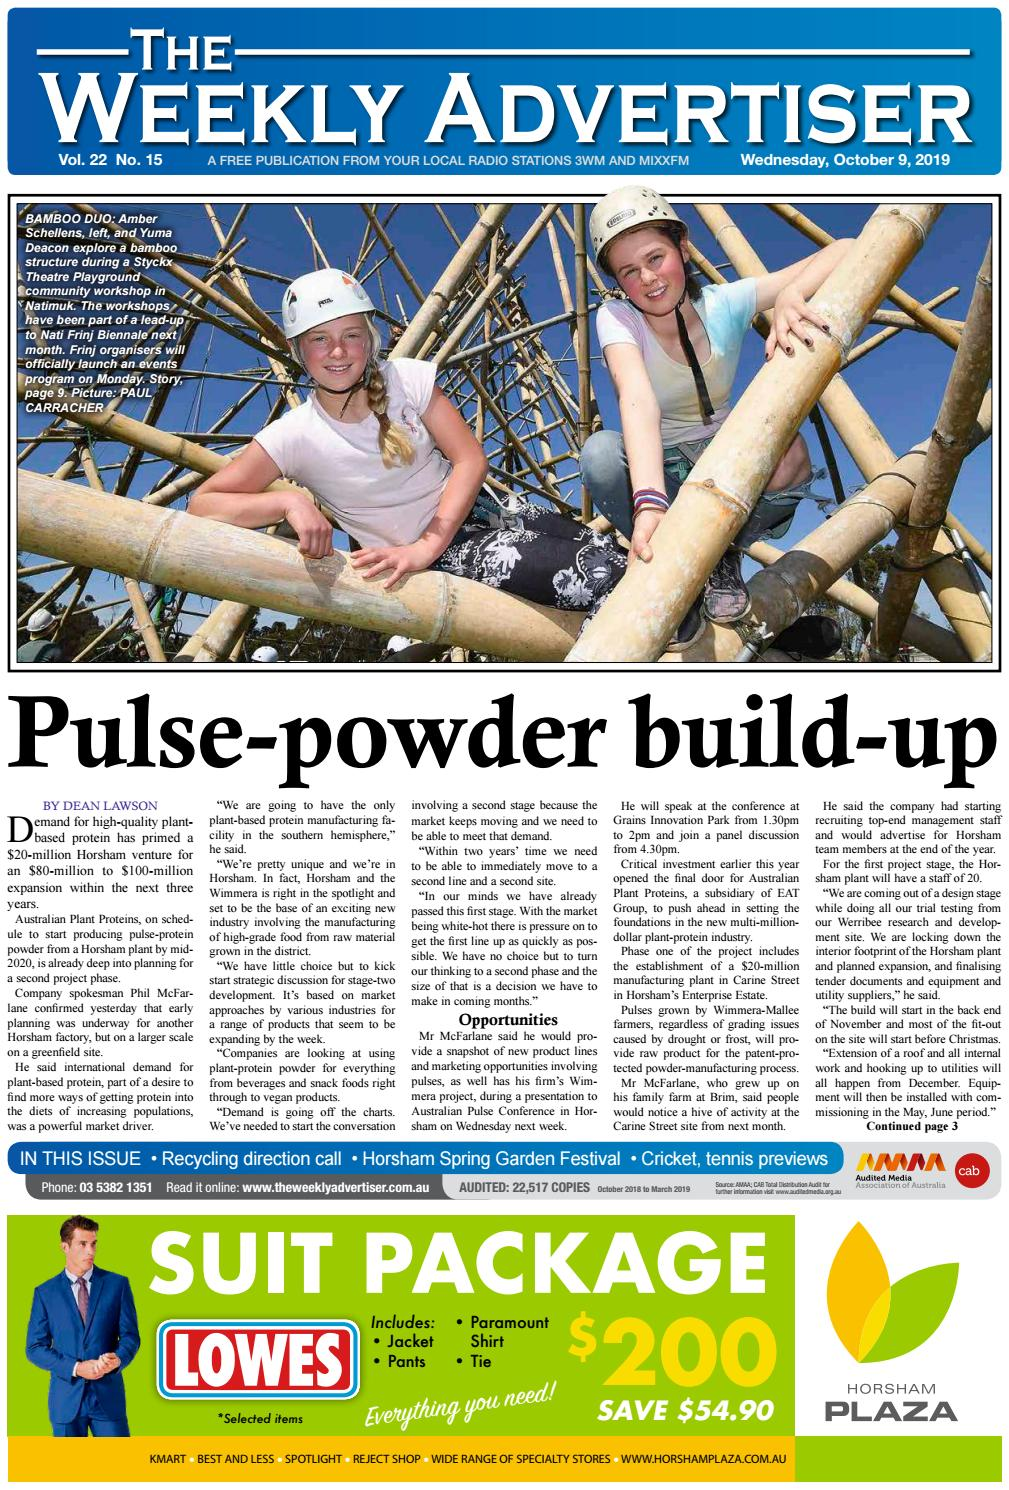 The Weekly Advertiser Wednesday October 9 2019 By The